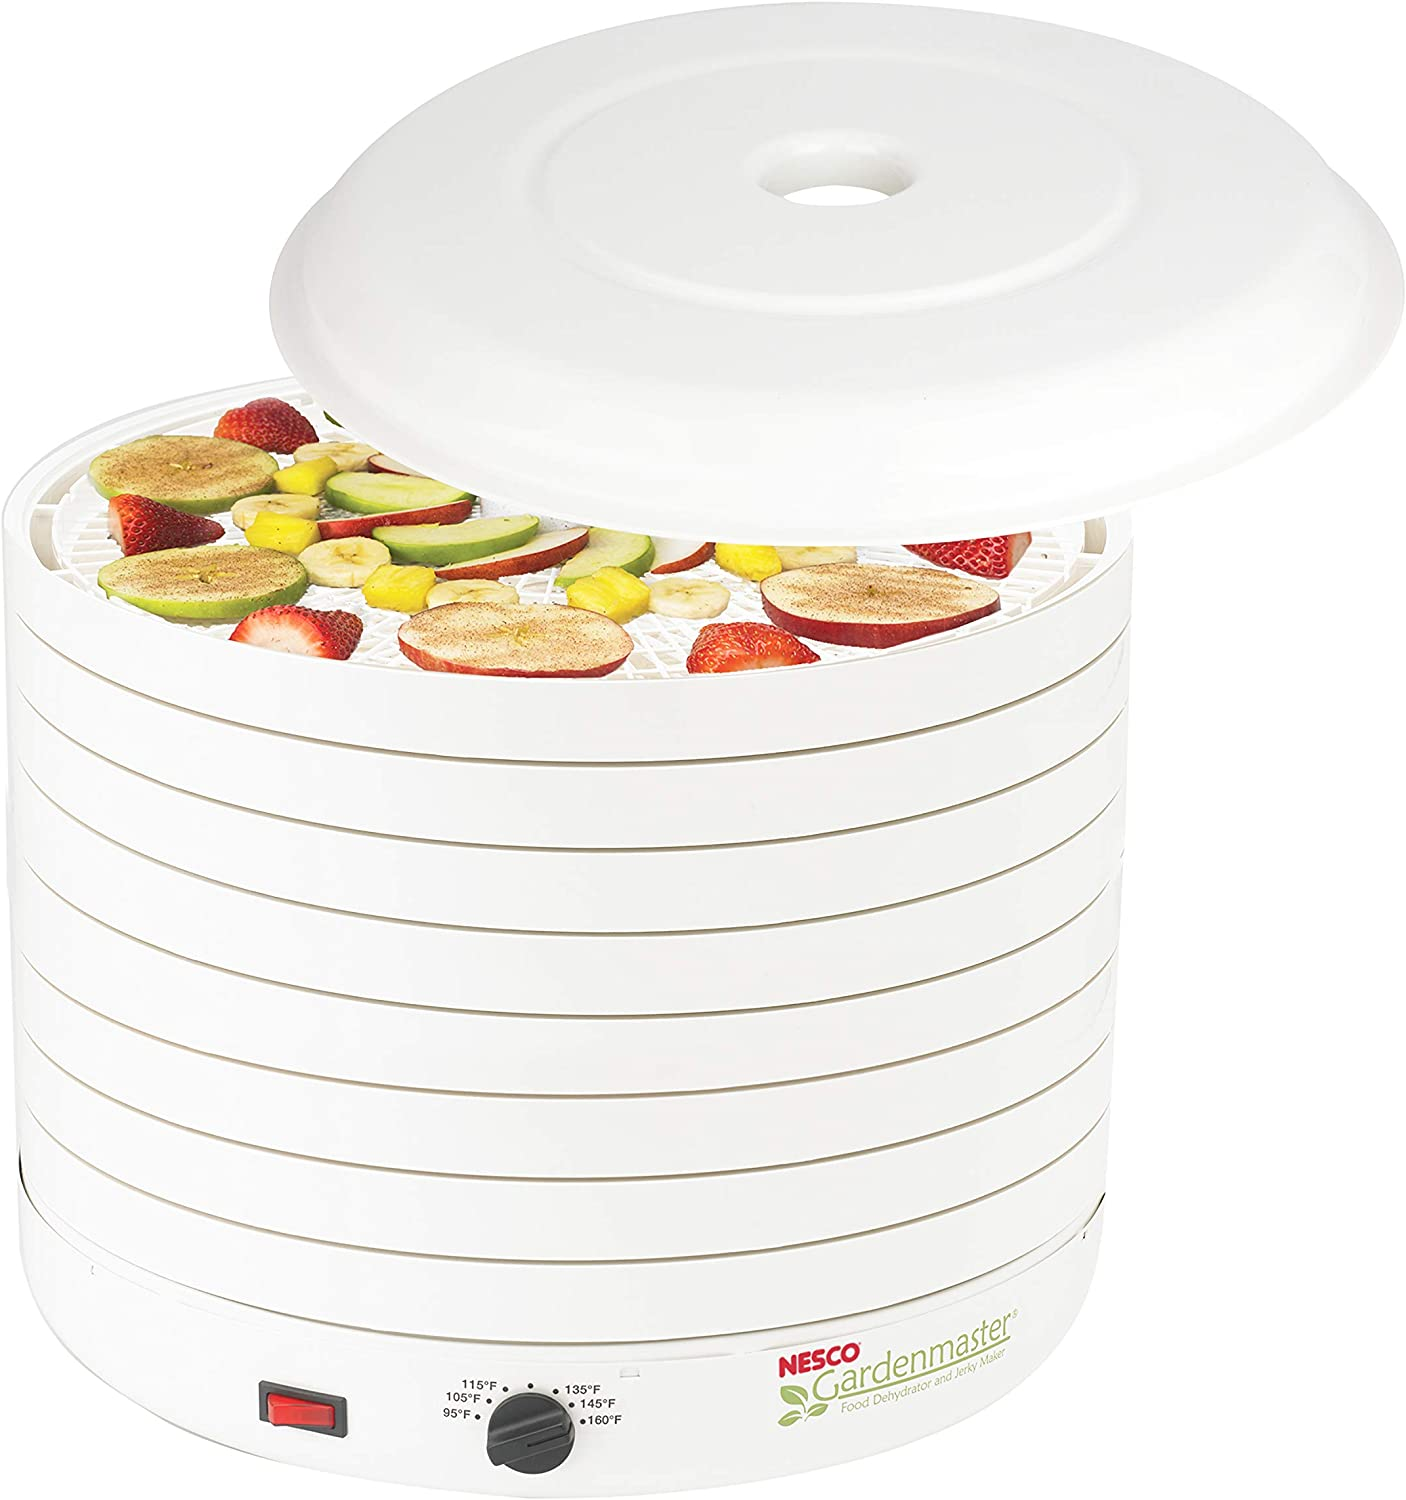 NESCO FD-1018A, Gardenmaster Food Dehydrator, White, 1000 Watts